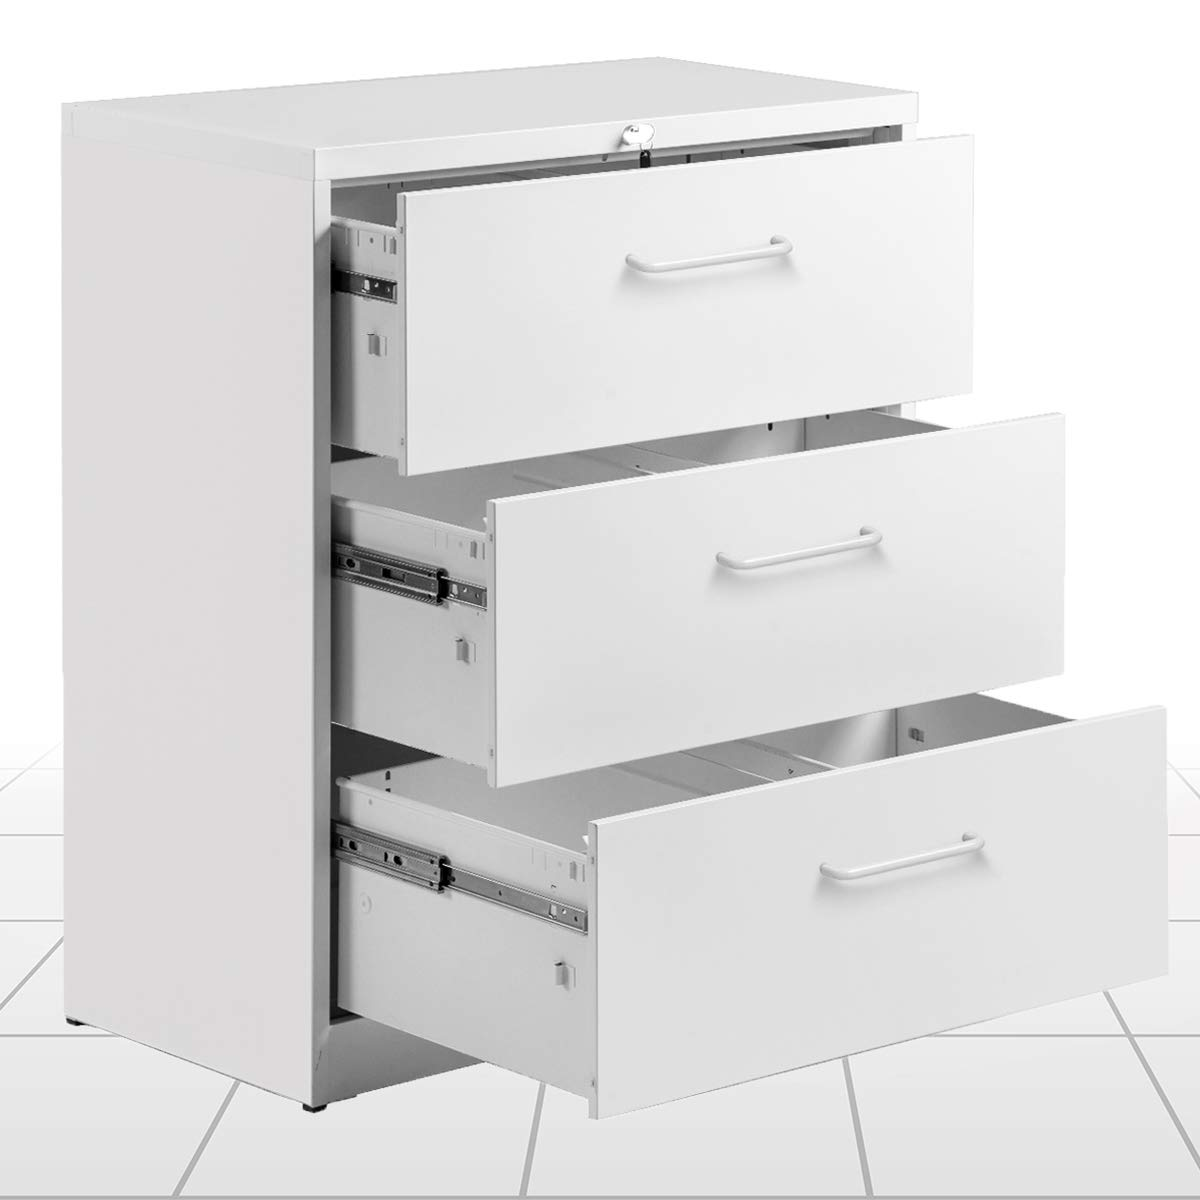 3 Drawers lateral Filing Cabinet 2 Drawer Locking File Cabinet Metal Organizer Heavy Duty Hanging File Office Home Storage